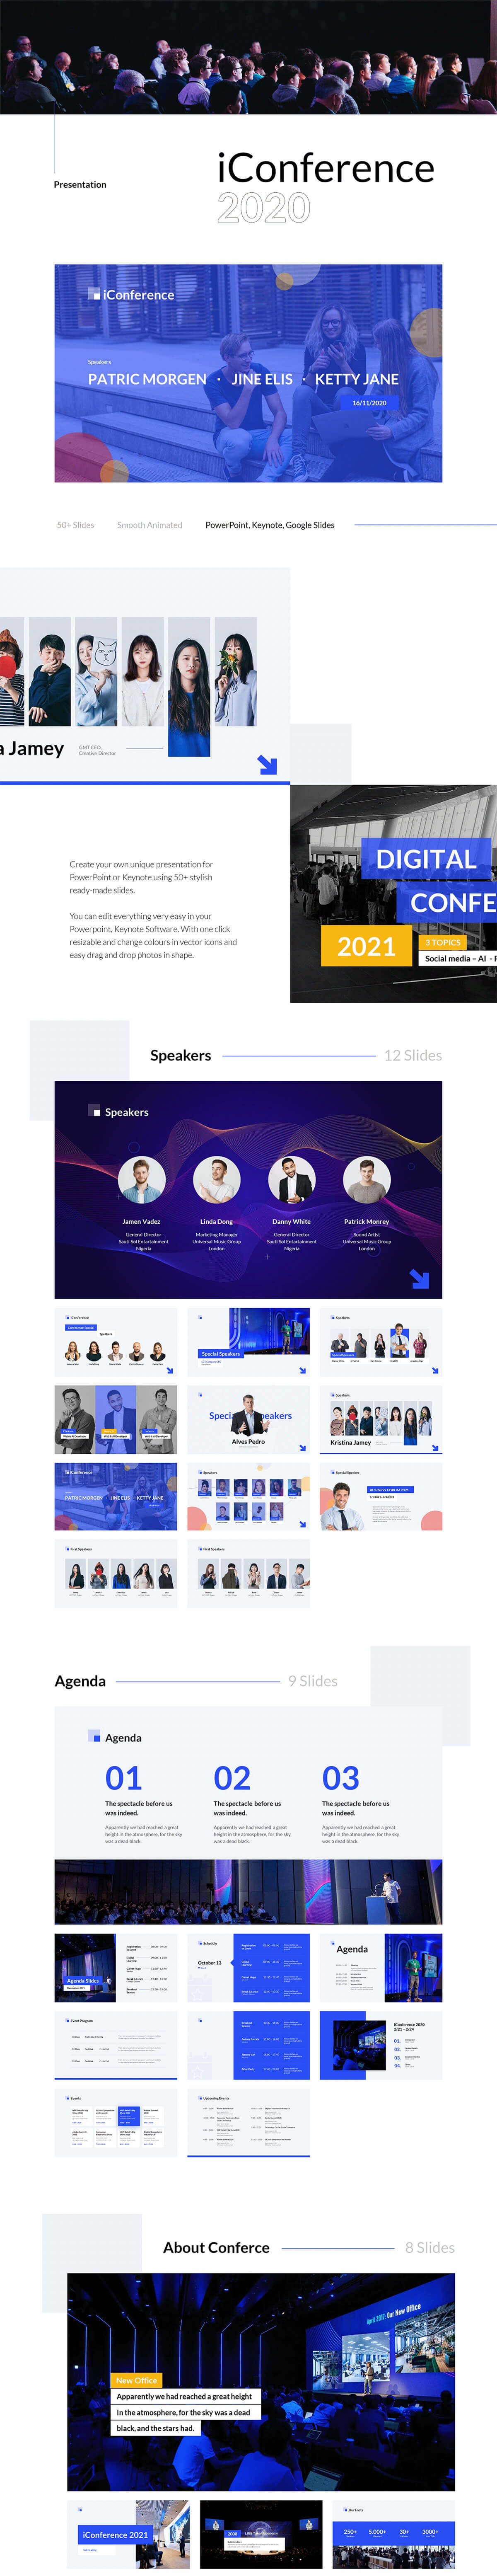 iConference Presentation Template